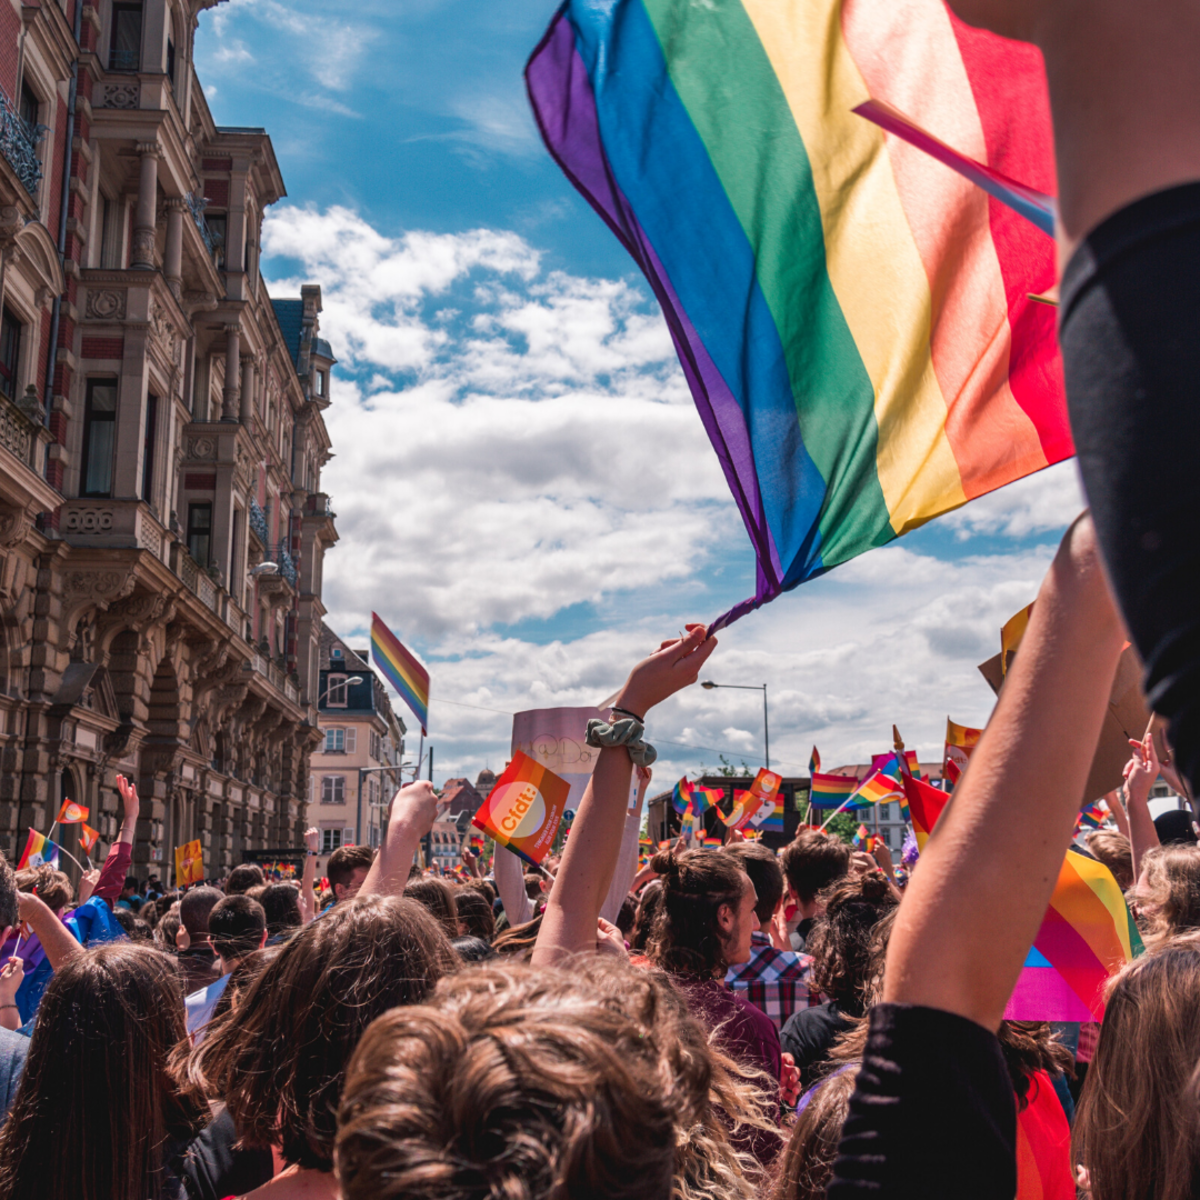 Do you feel at home at LGBT+ events?